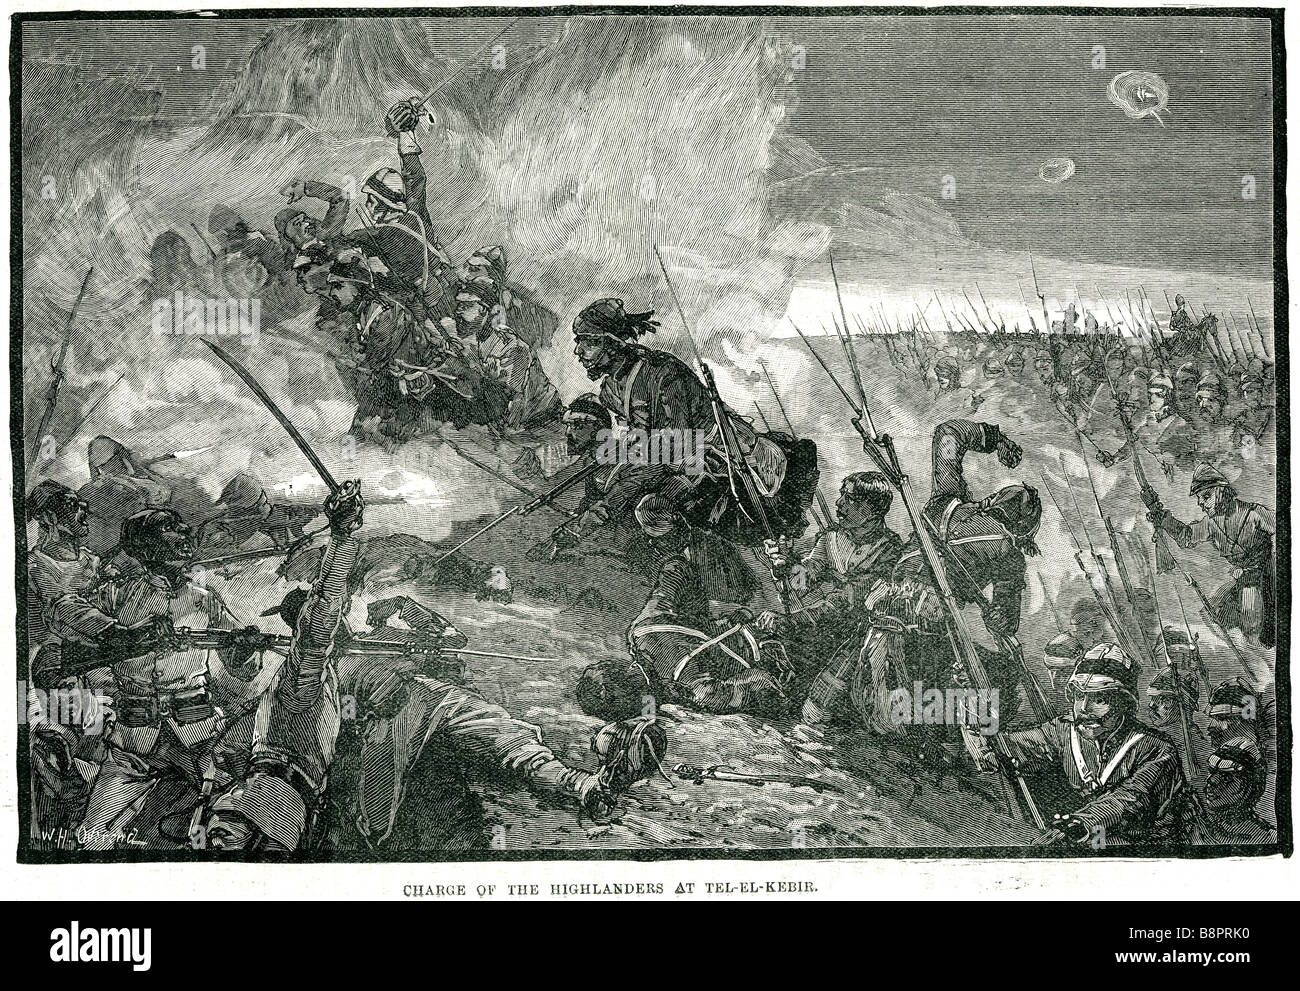 charge highlanders Battle of Tel el-Kebir 1882 Egyptian army British military - Stock Image